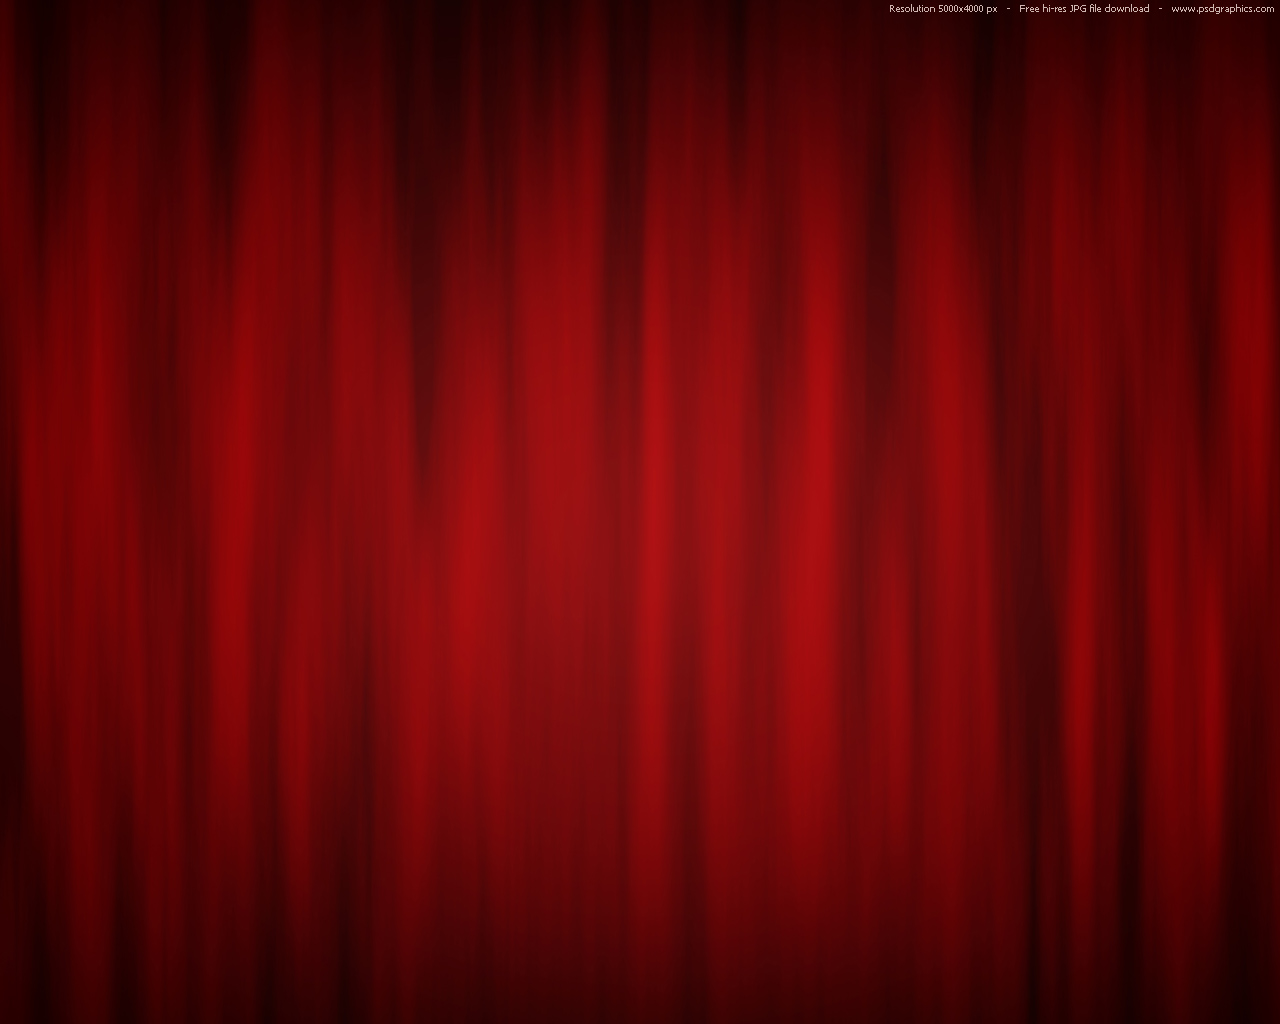 Red curtain background theatre stage